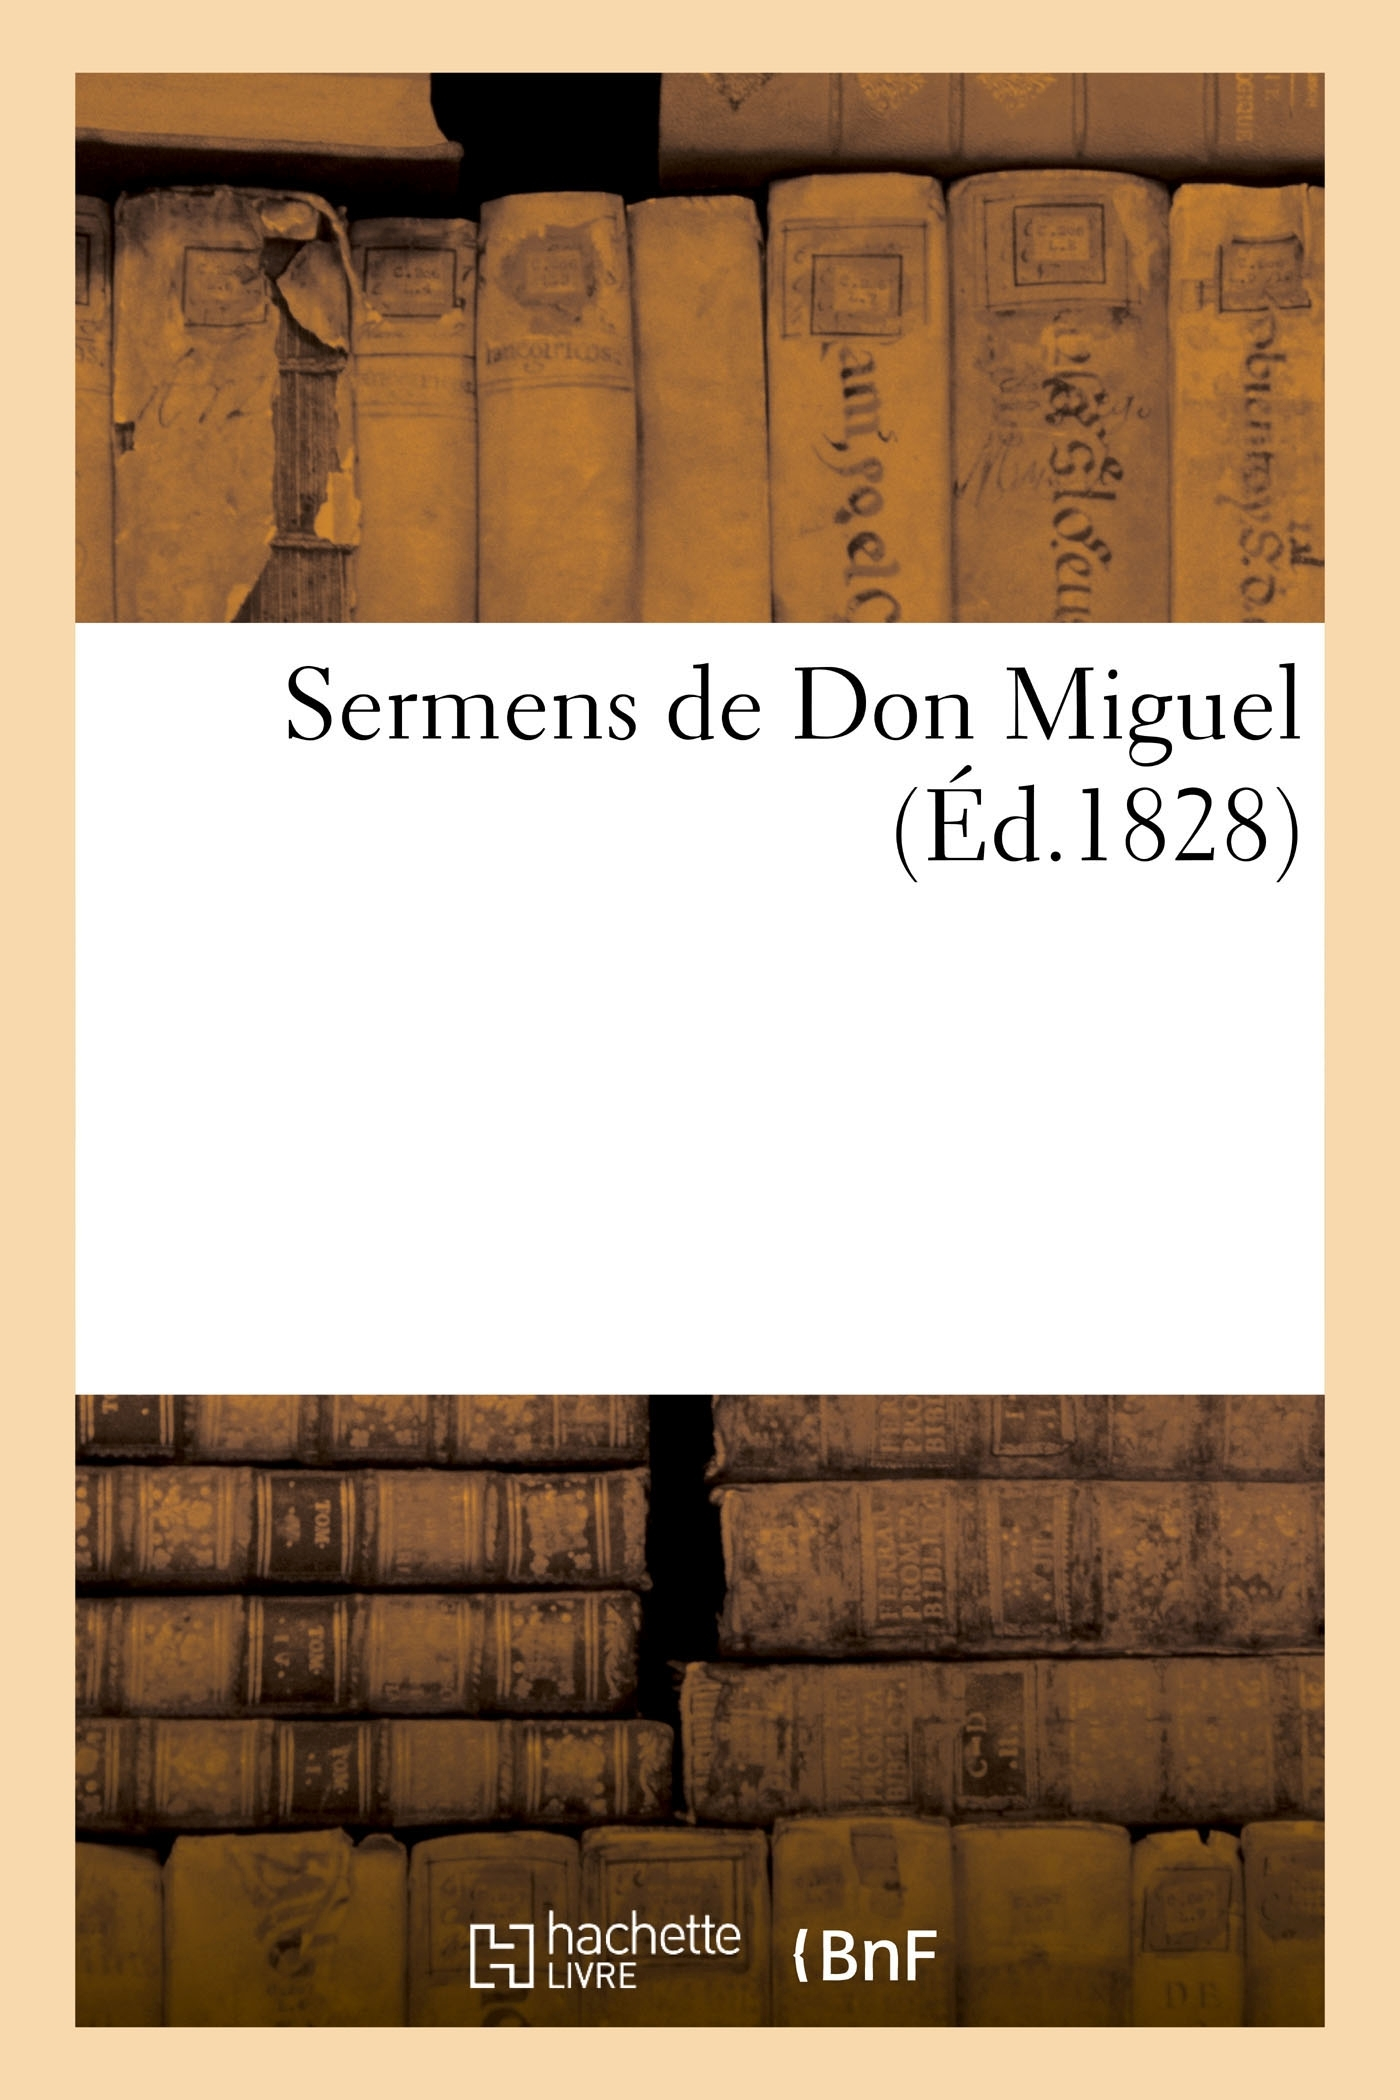 SERMENS DE DON MIGUEL